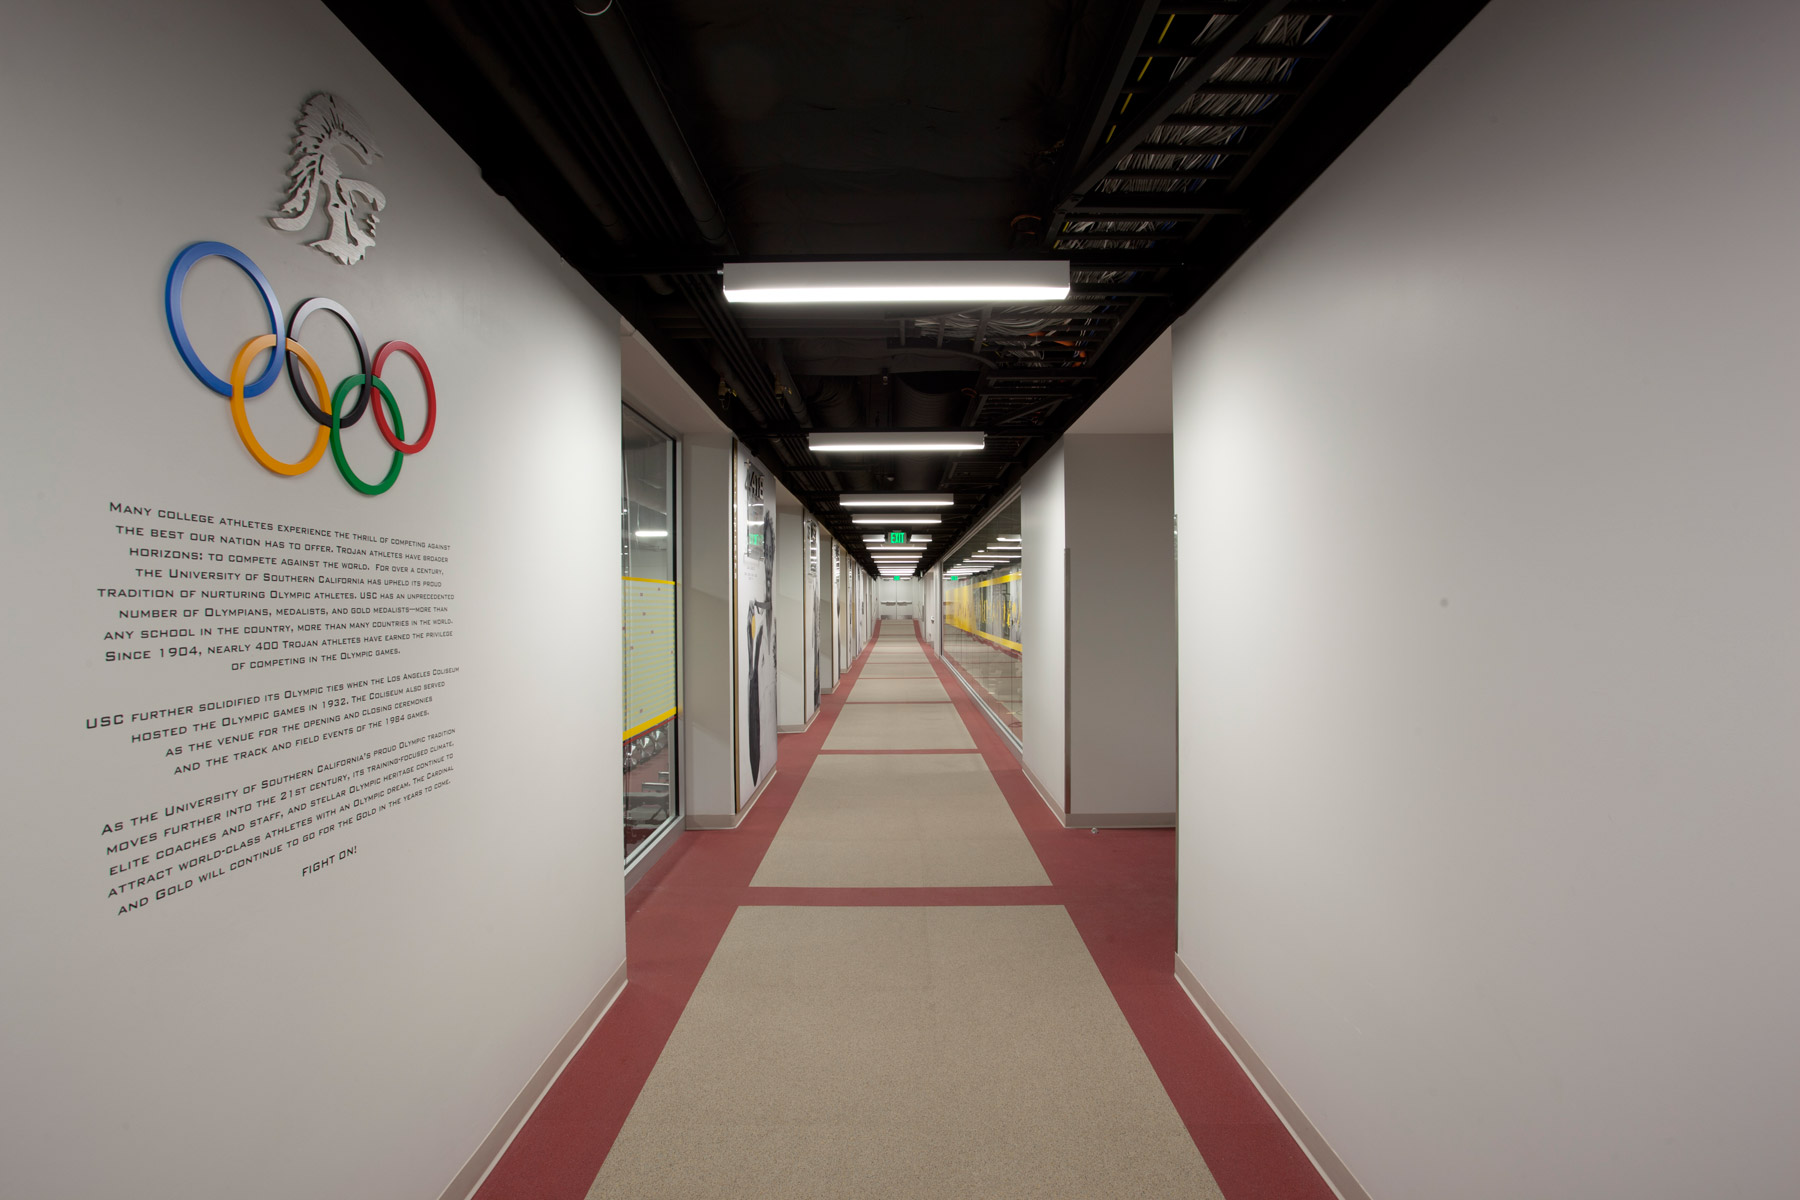 USC all sports building 04